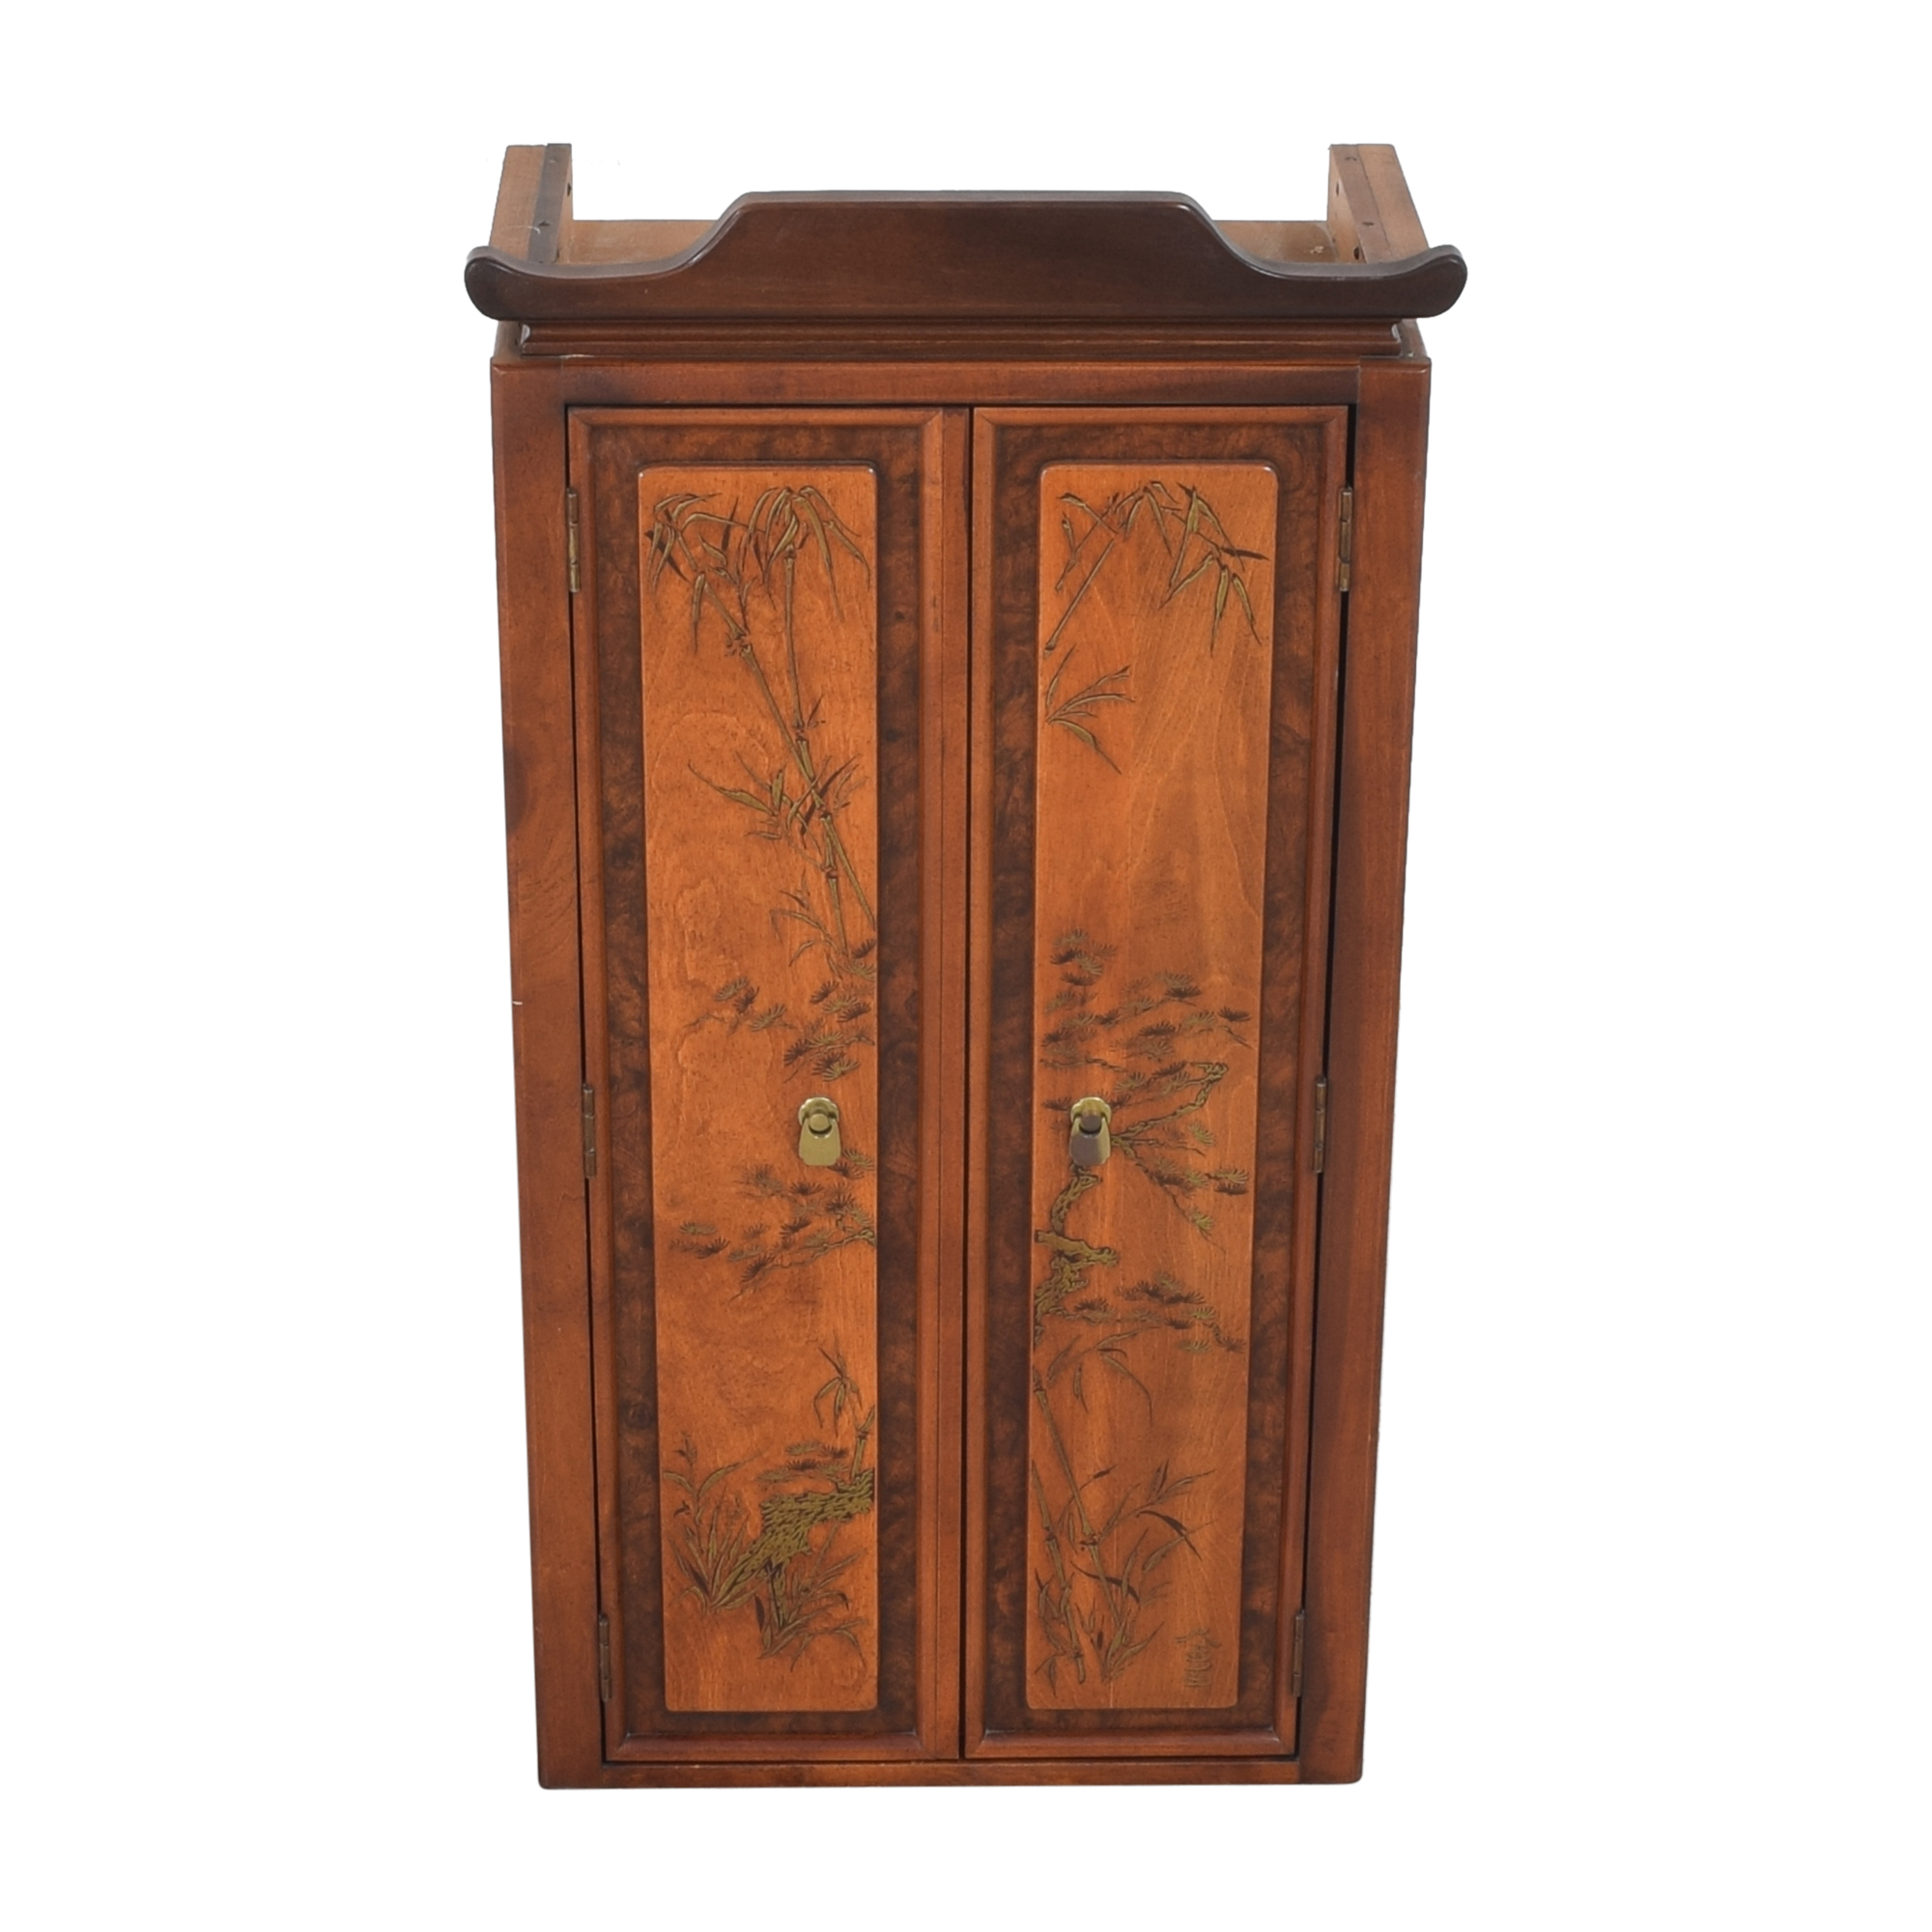 Chinoiserie Accent Cabinet / Cabinets & Sideboards